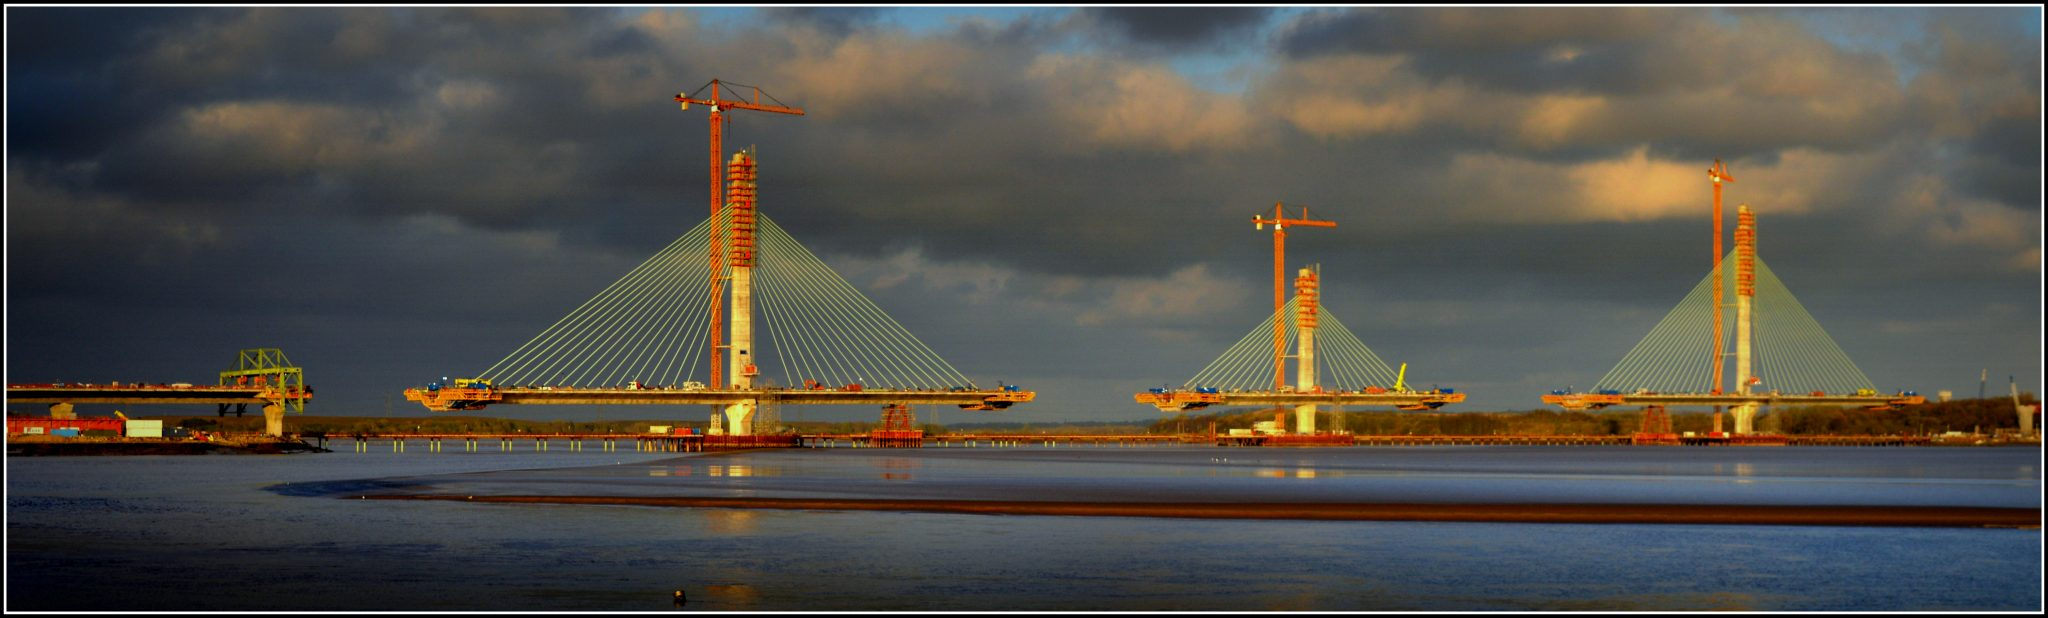 Special wings Formwork travellers for Mersey Gateway Bridge